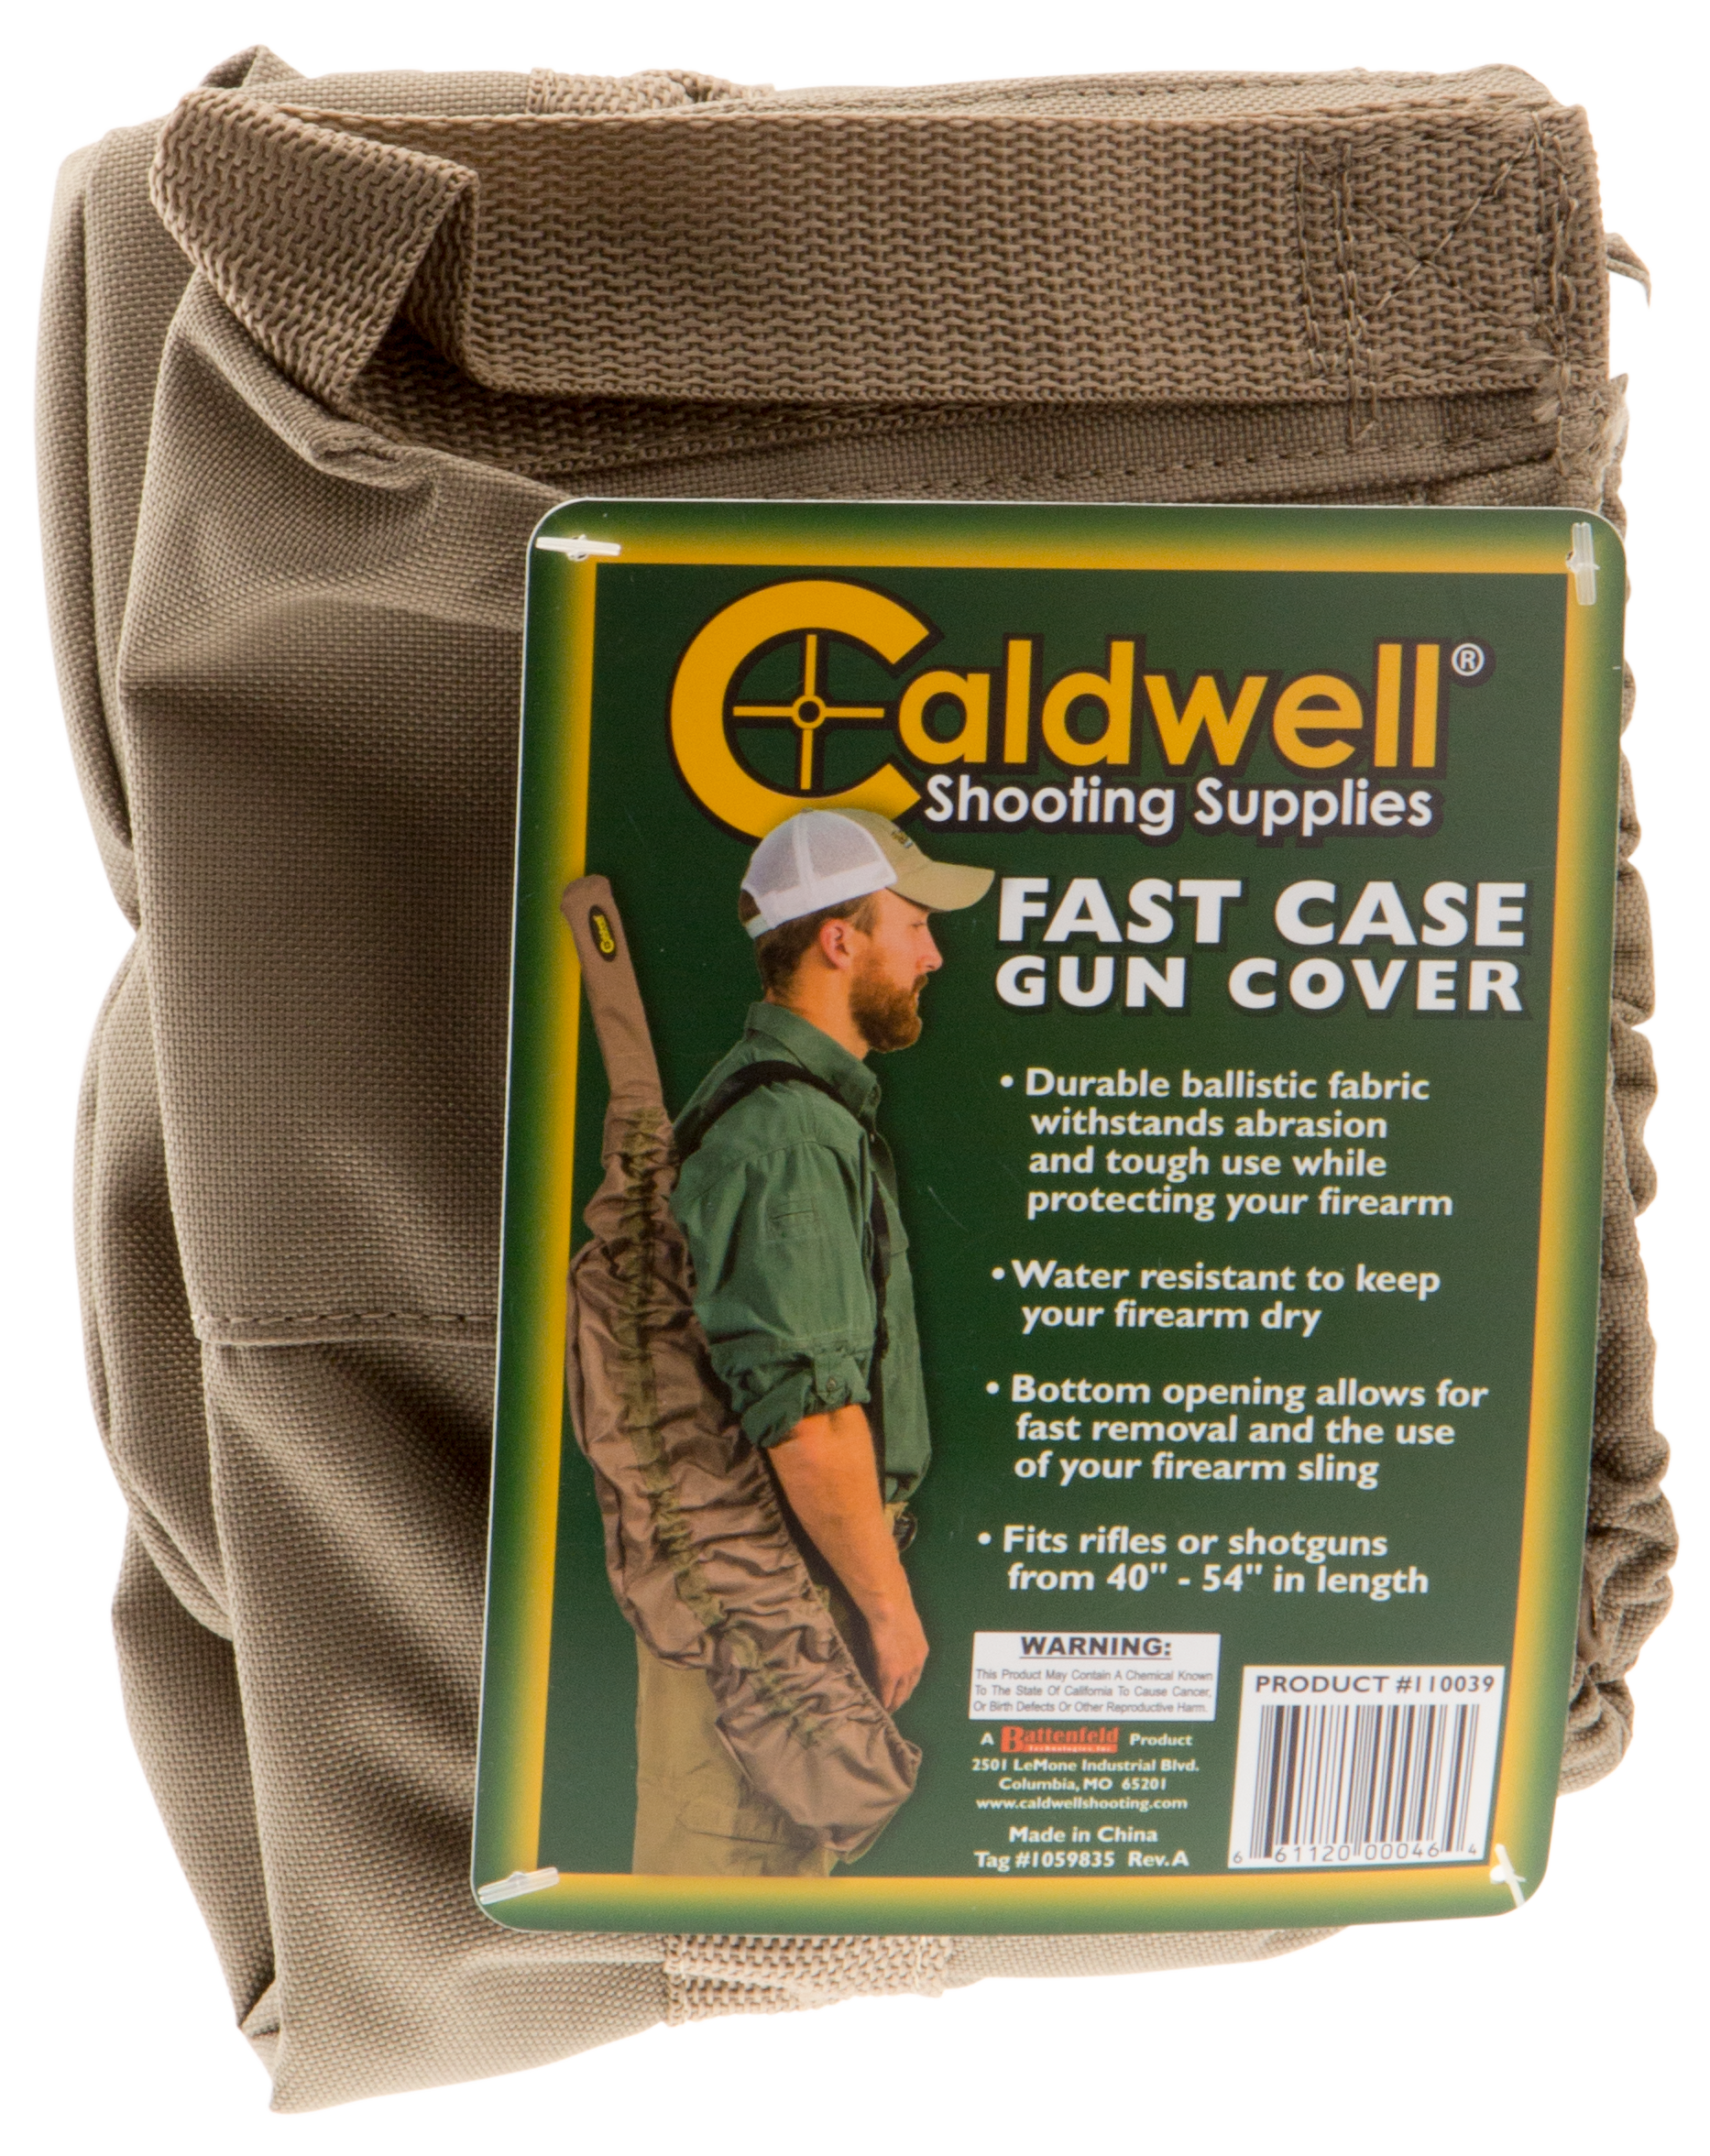 CALDWELL Fast Case